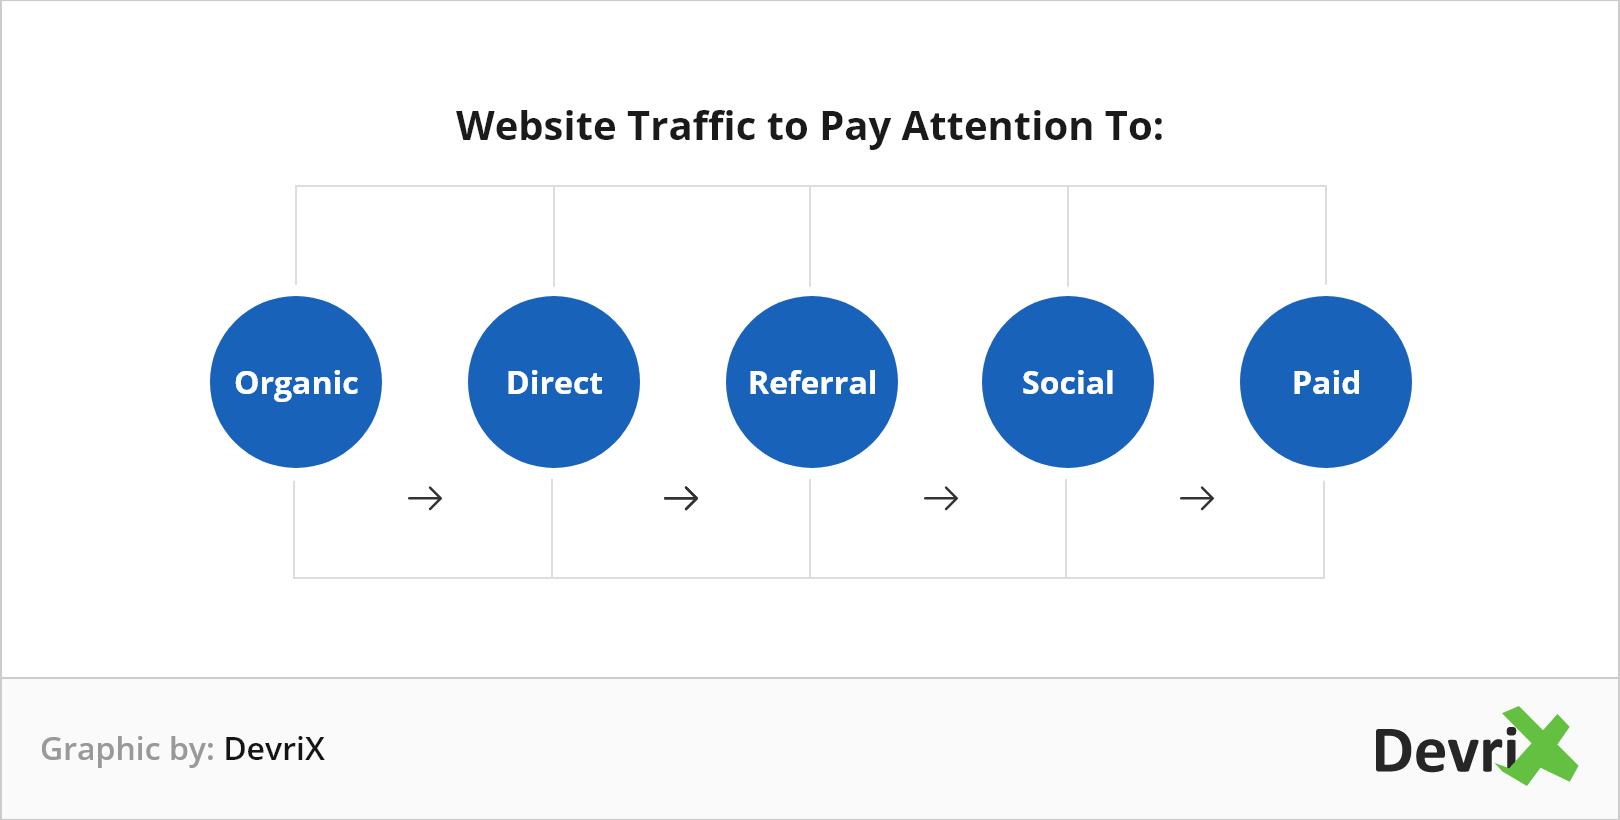 Website Traffic to Pay Attention To